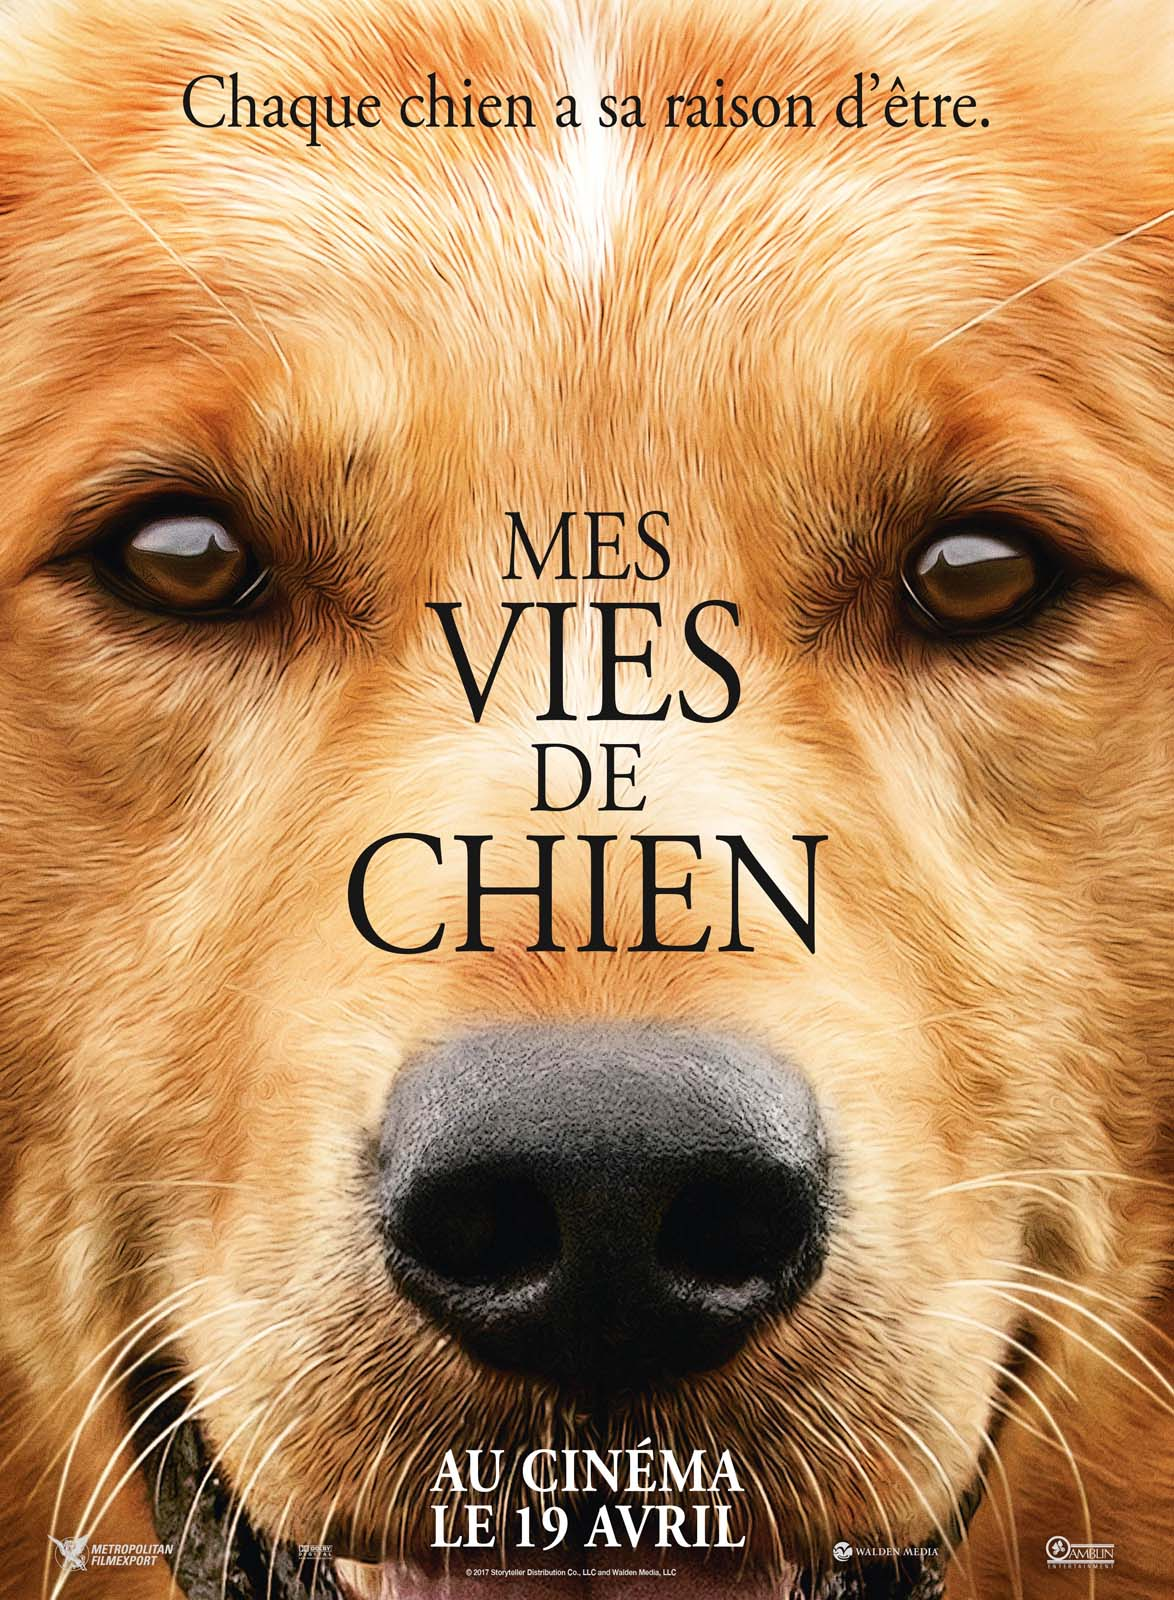 telecharger Mes vies de chien MKV Exclus 1080p